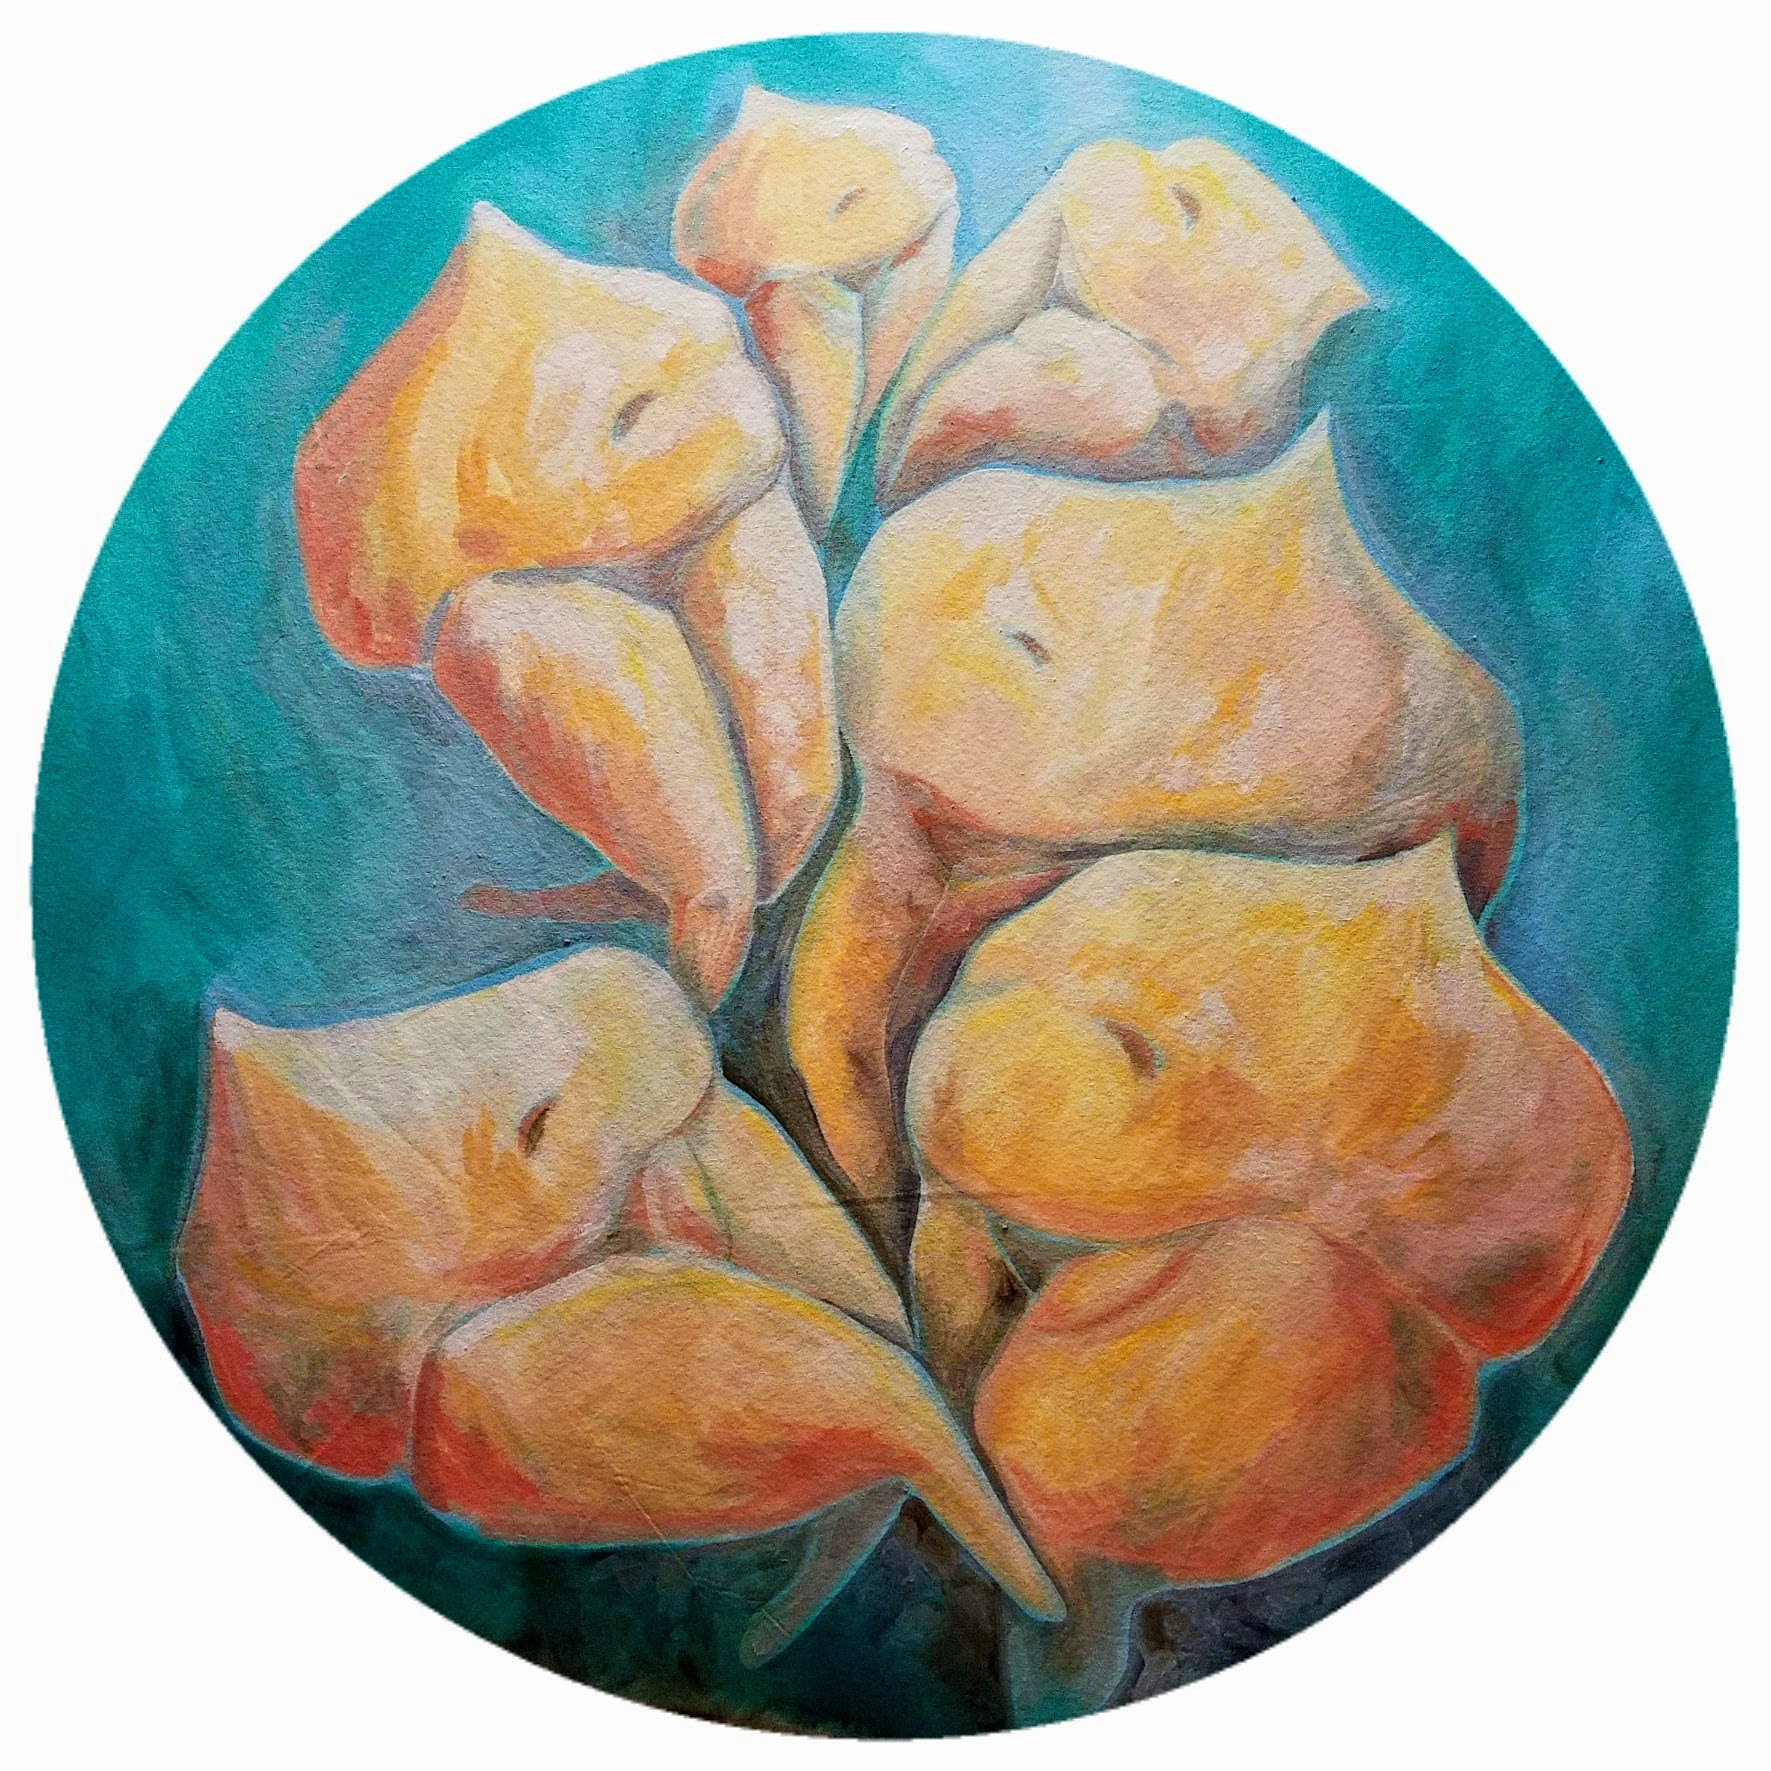 """Peach Pits"" Oil on canvas, mixed media, 42"" diameter - Currently for sale at Prove Collective, Duluth, MN"